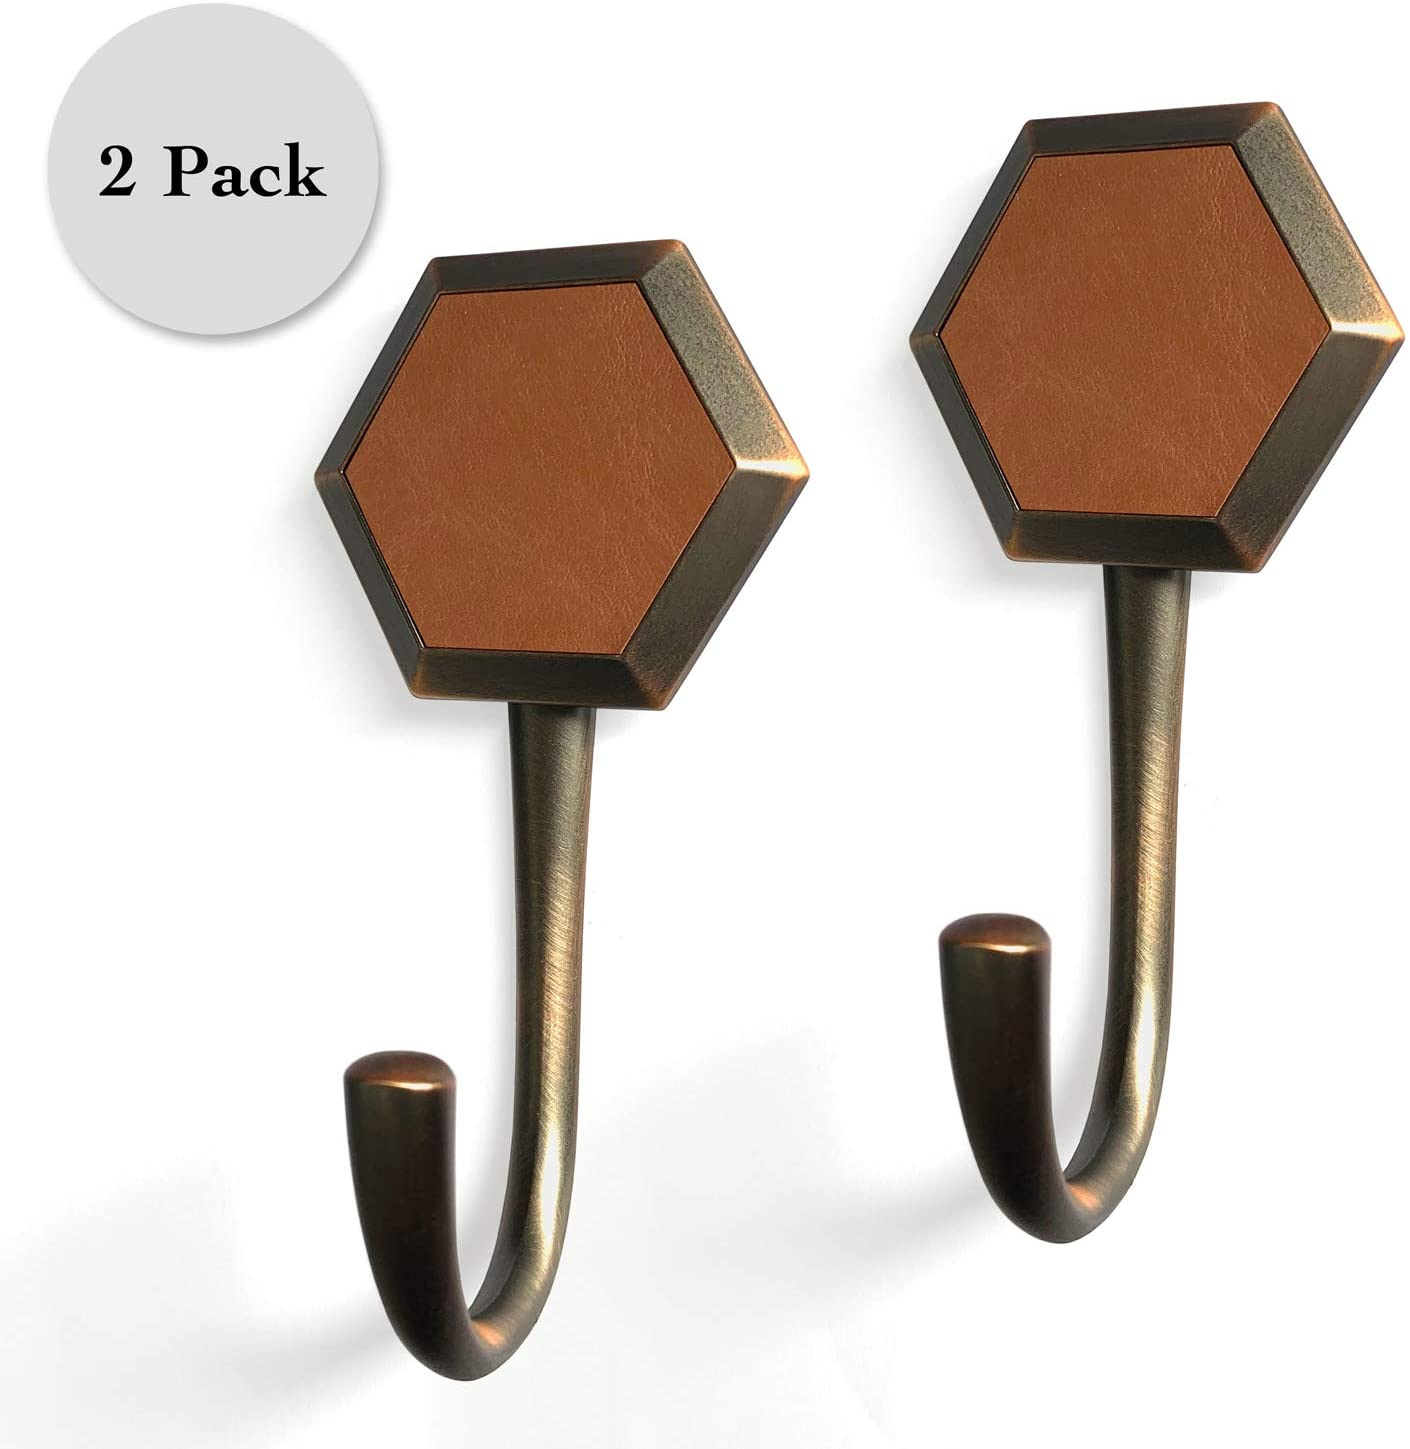 Regent Square Set of 2 Faux Leather Wall Hooks- Hexagon with Brown Faux Leather- 2-Pack, Oil Rubbed Bronze, Zinc Alloy, Wall/Door Mounted